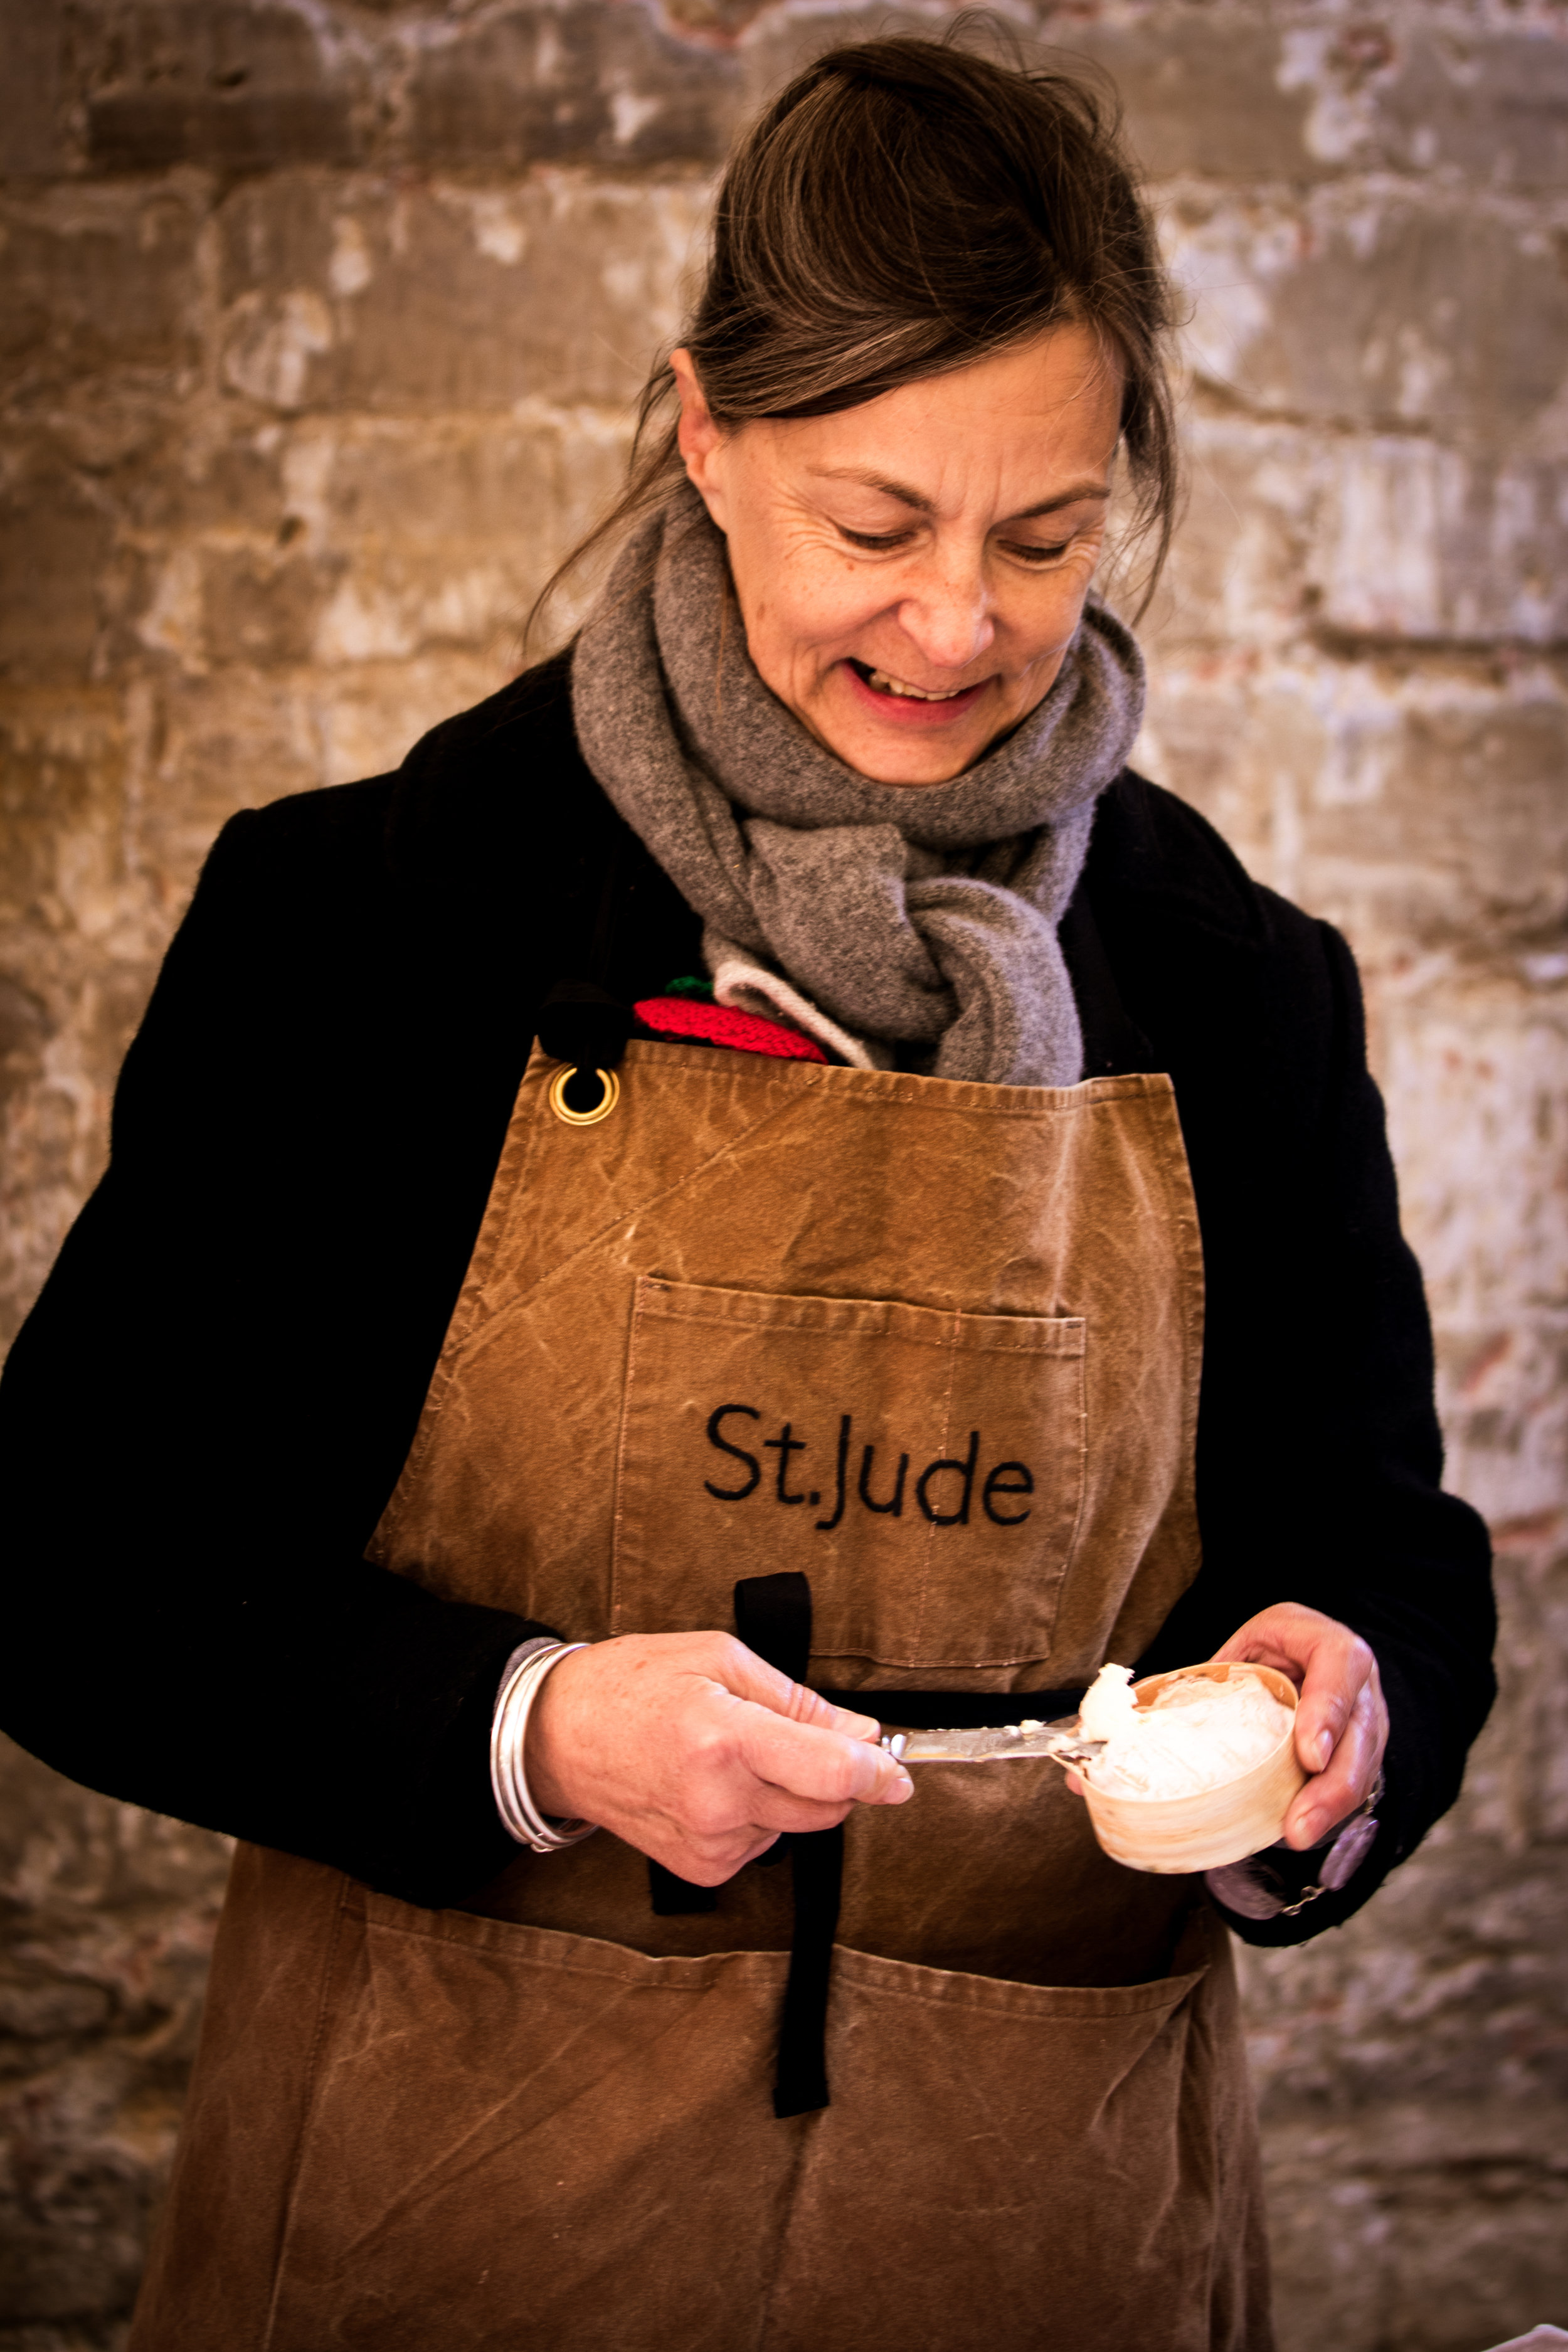 St.Jude    -  A French St. Marcellin-style cheese made by Julie Cheyney in Suffolk from raw milk.